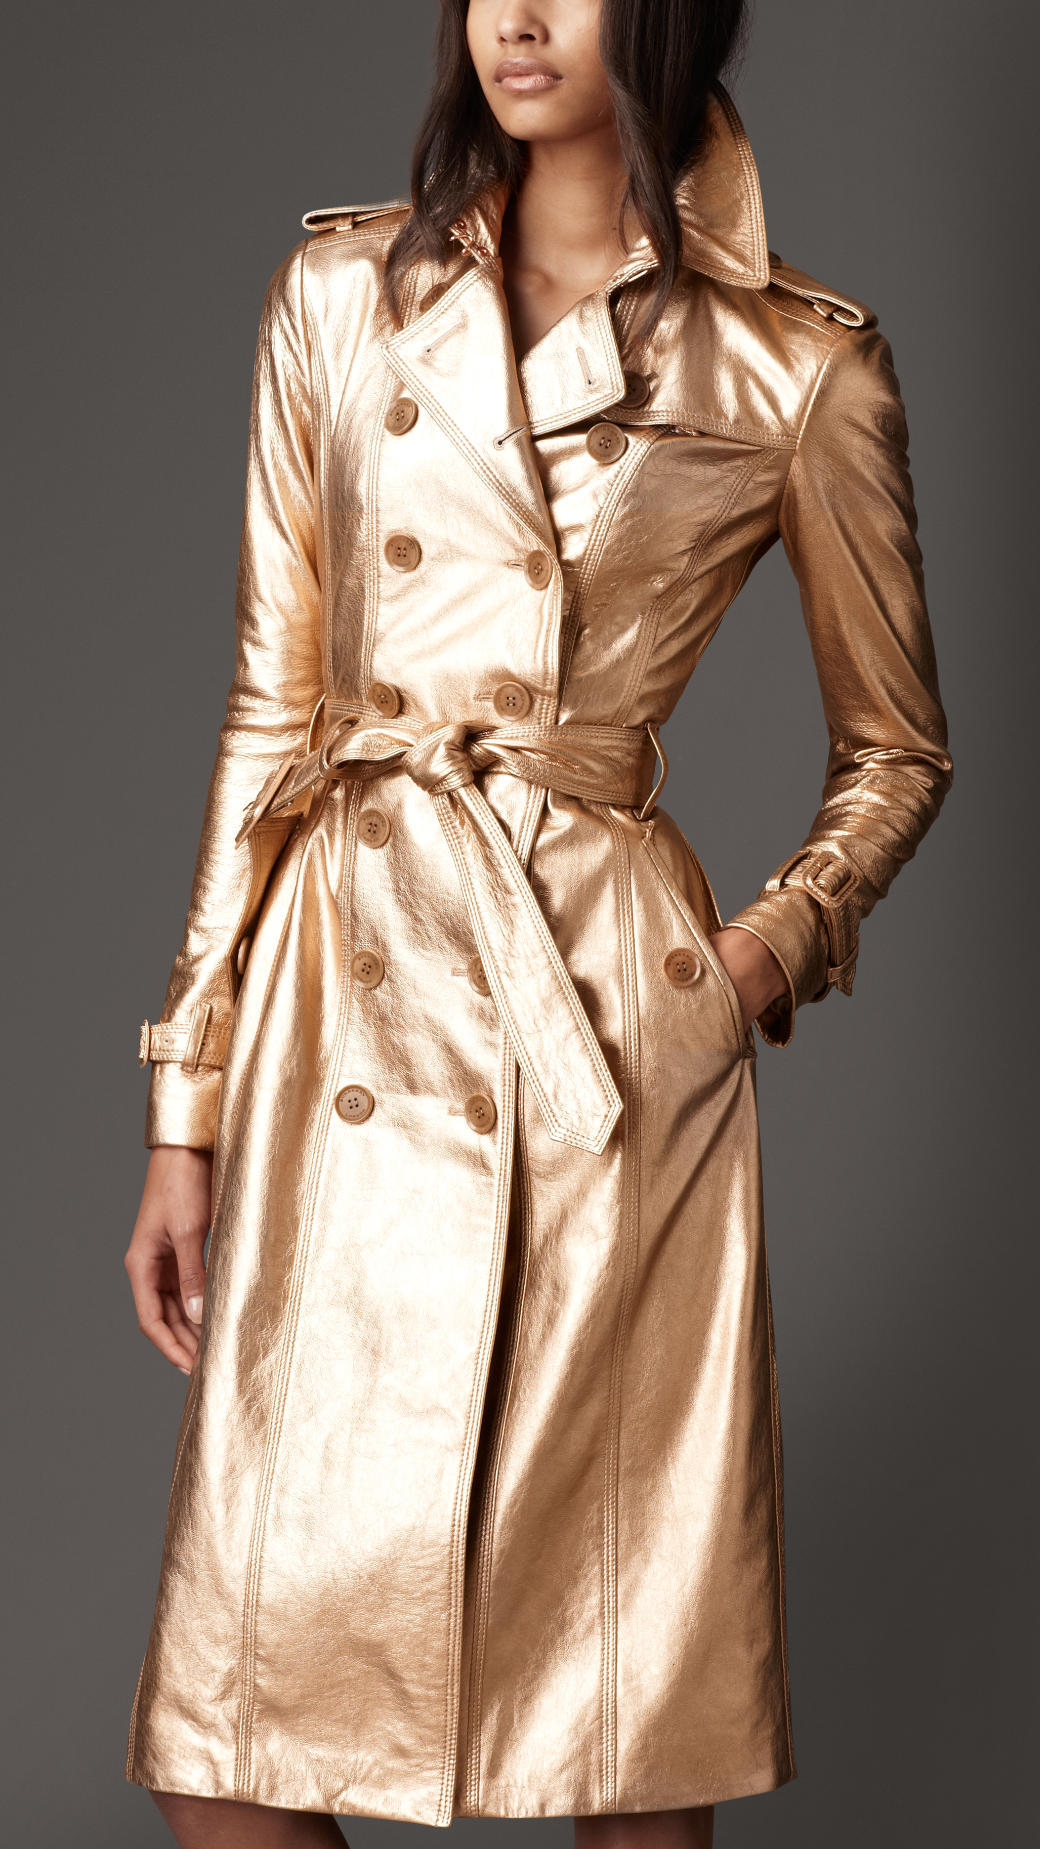 burberry trench coat sale outlet um8m  burberry metallic trench coat burberry metallic trench coat